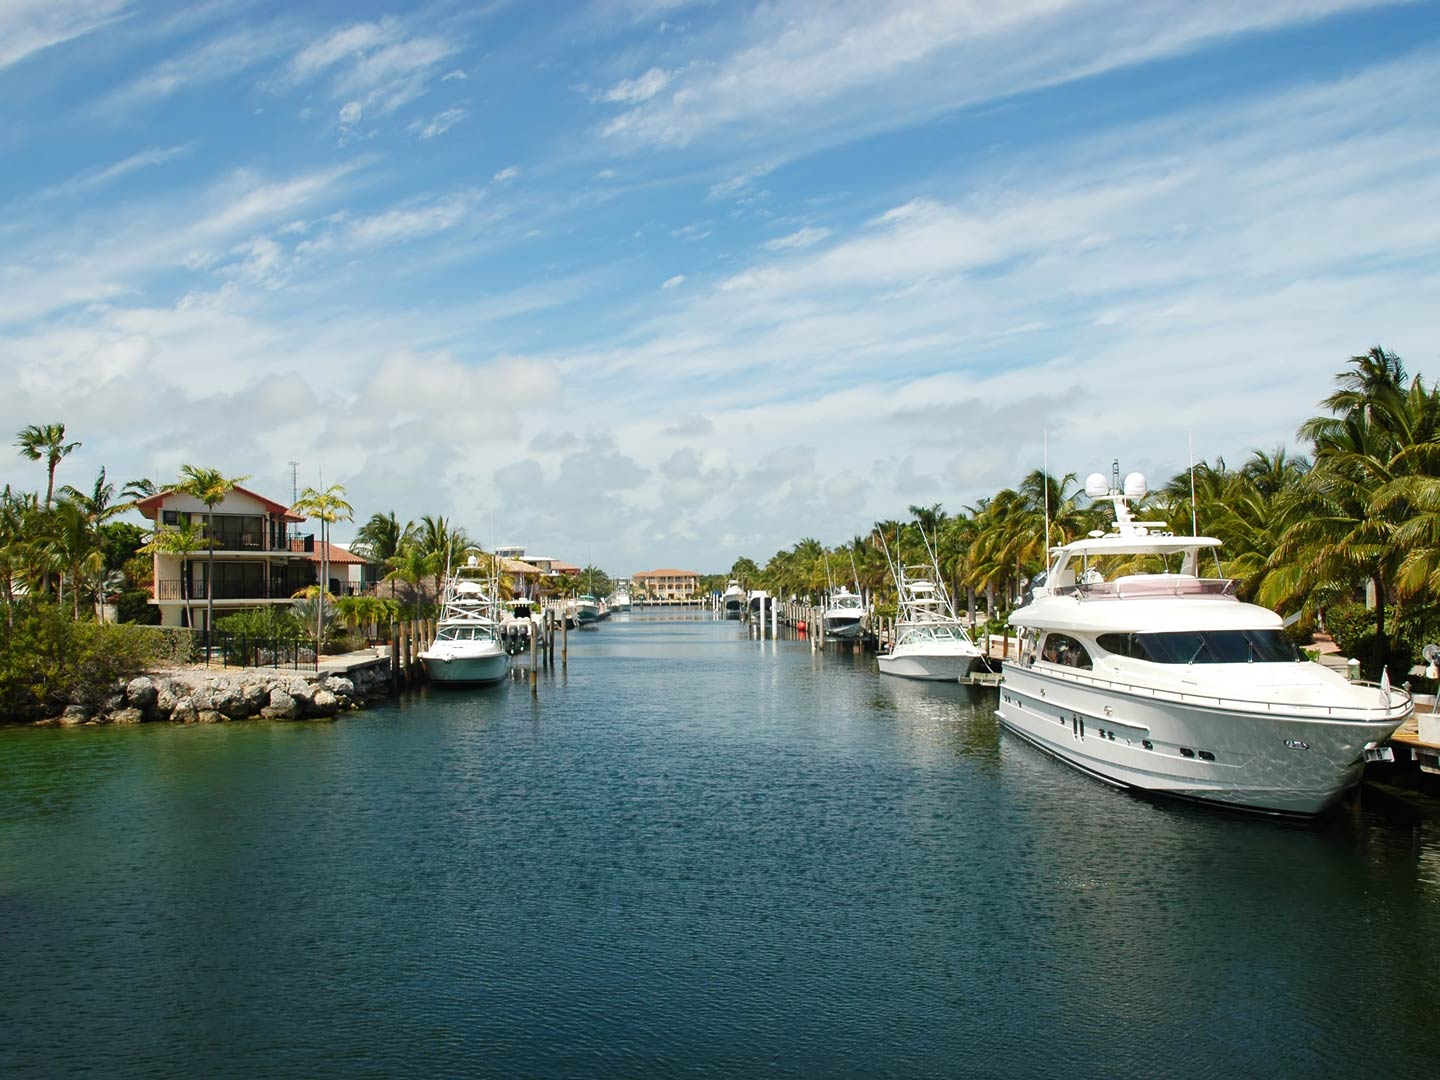 Charter boats docked on the waters of Key Largo, Florida